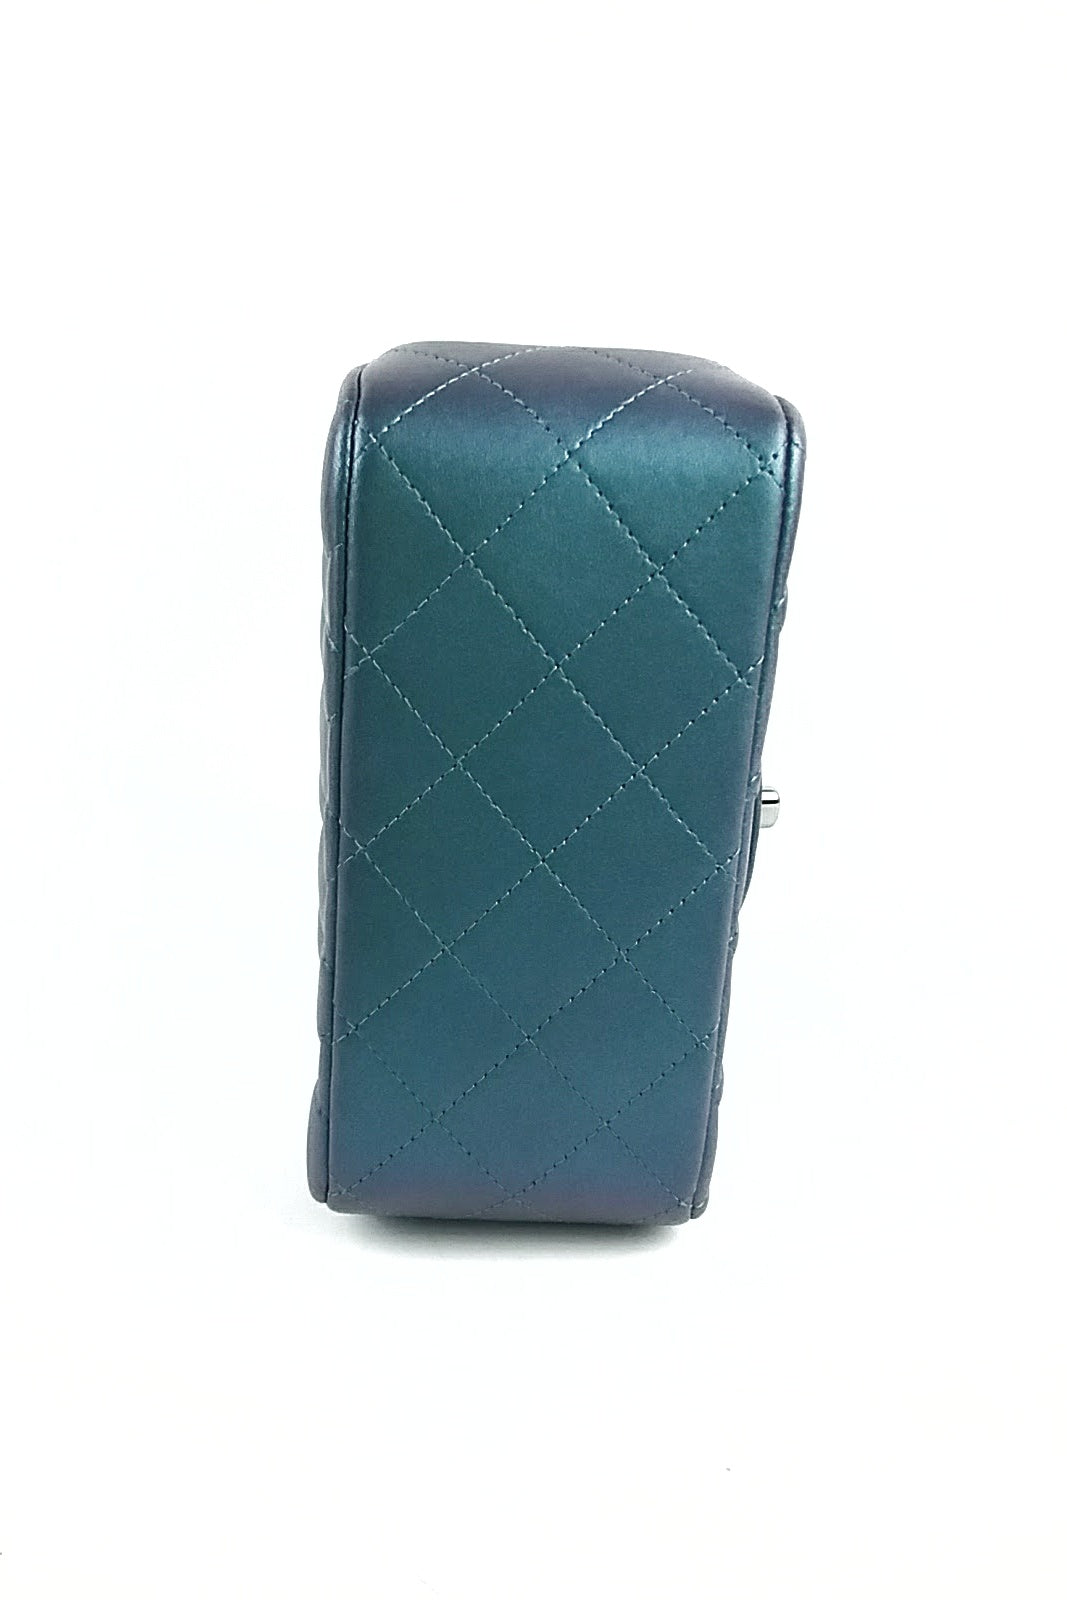 Iridescent Turquoise Square Mini Bag